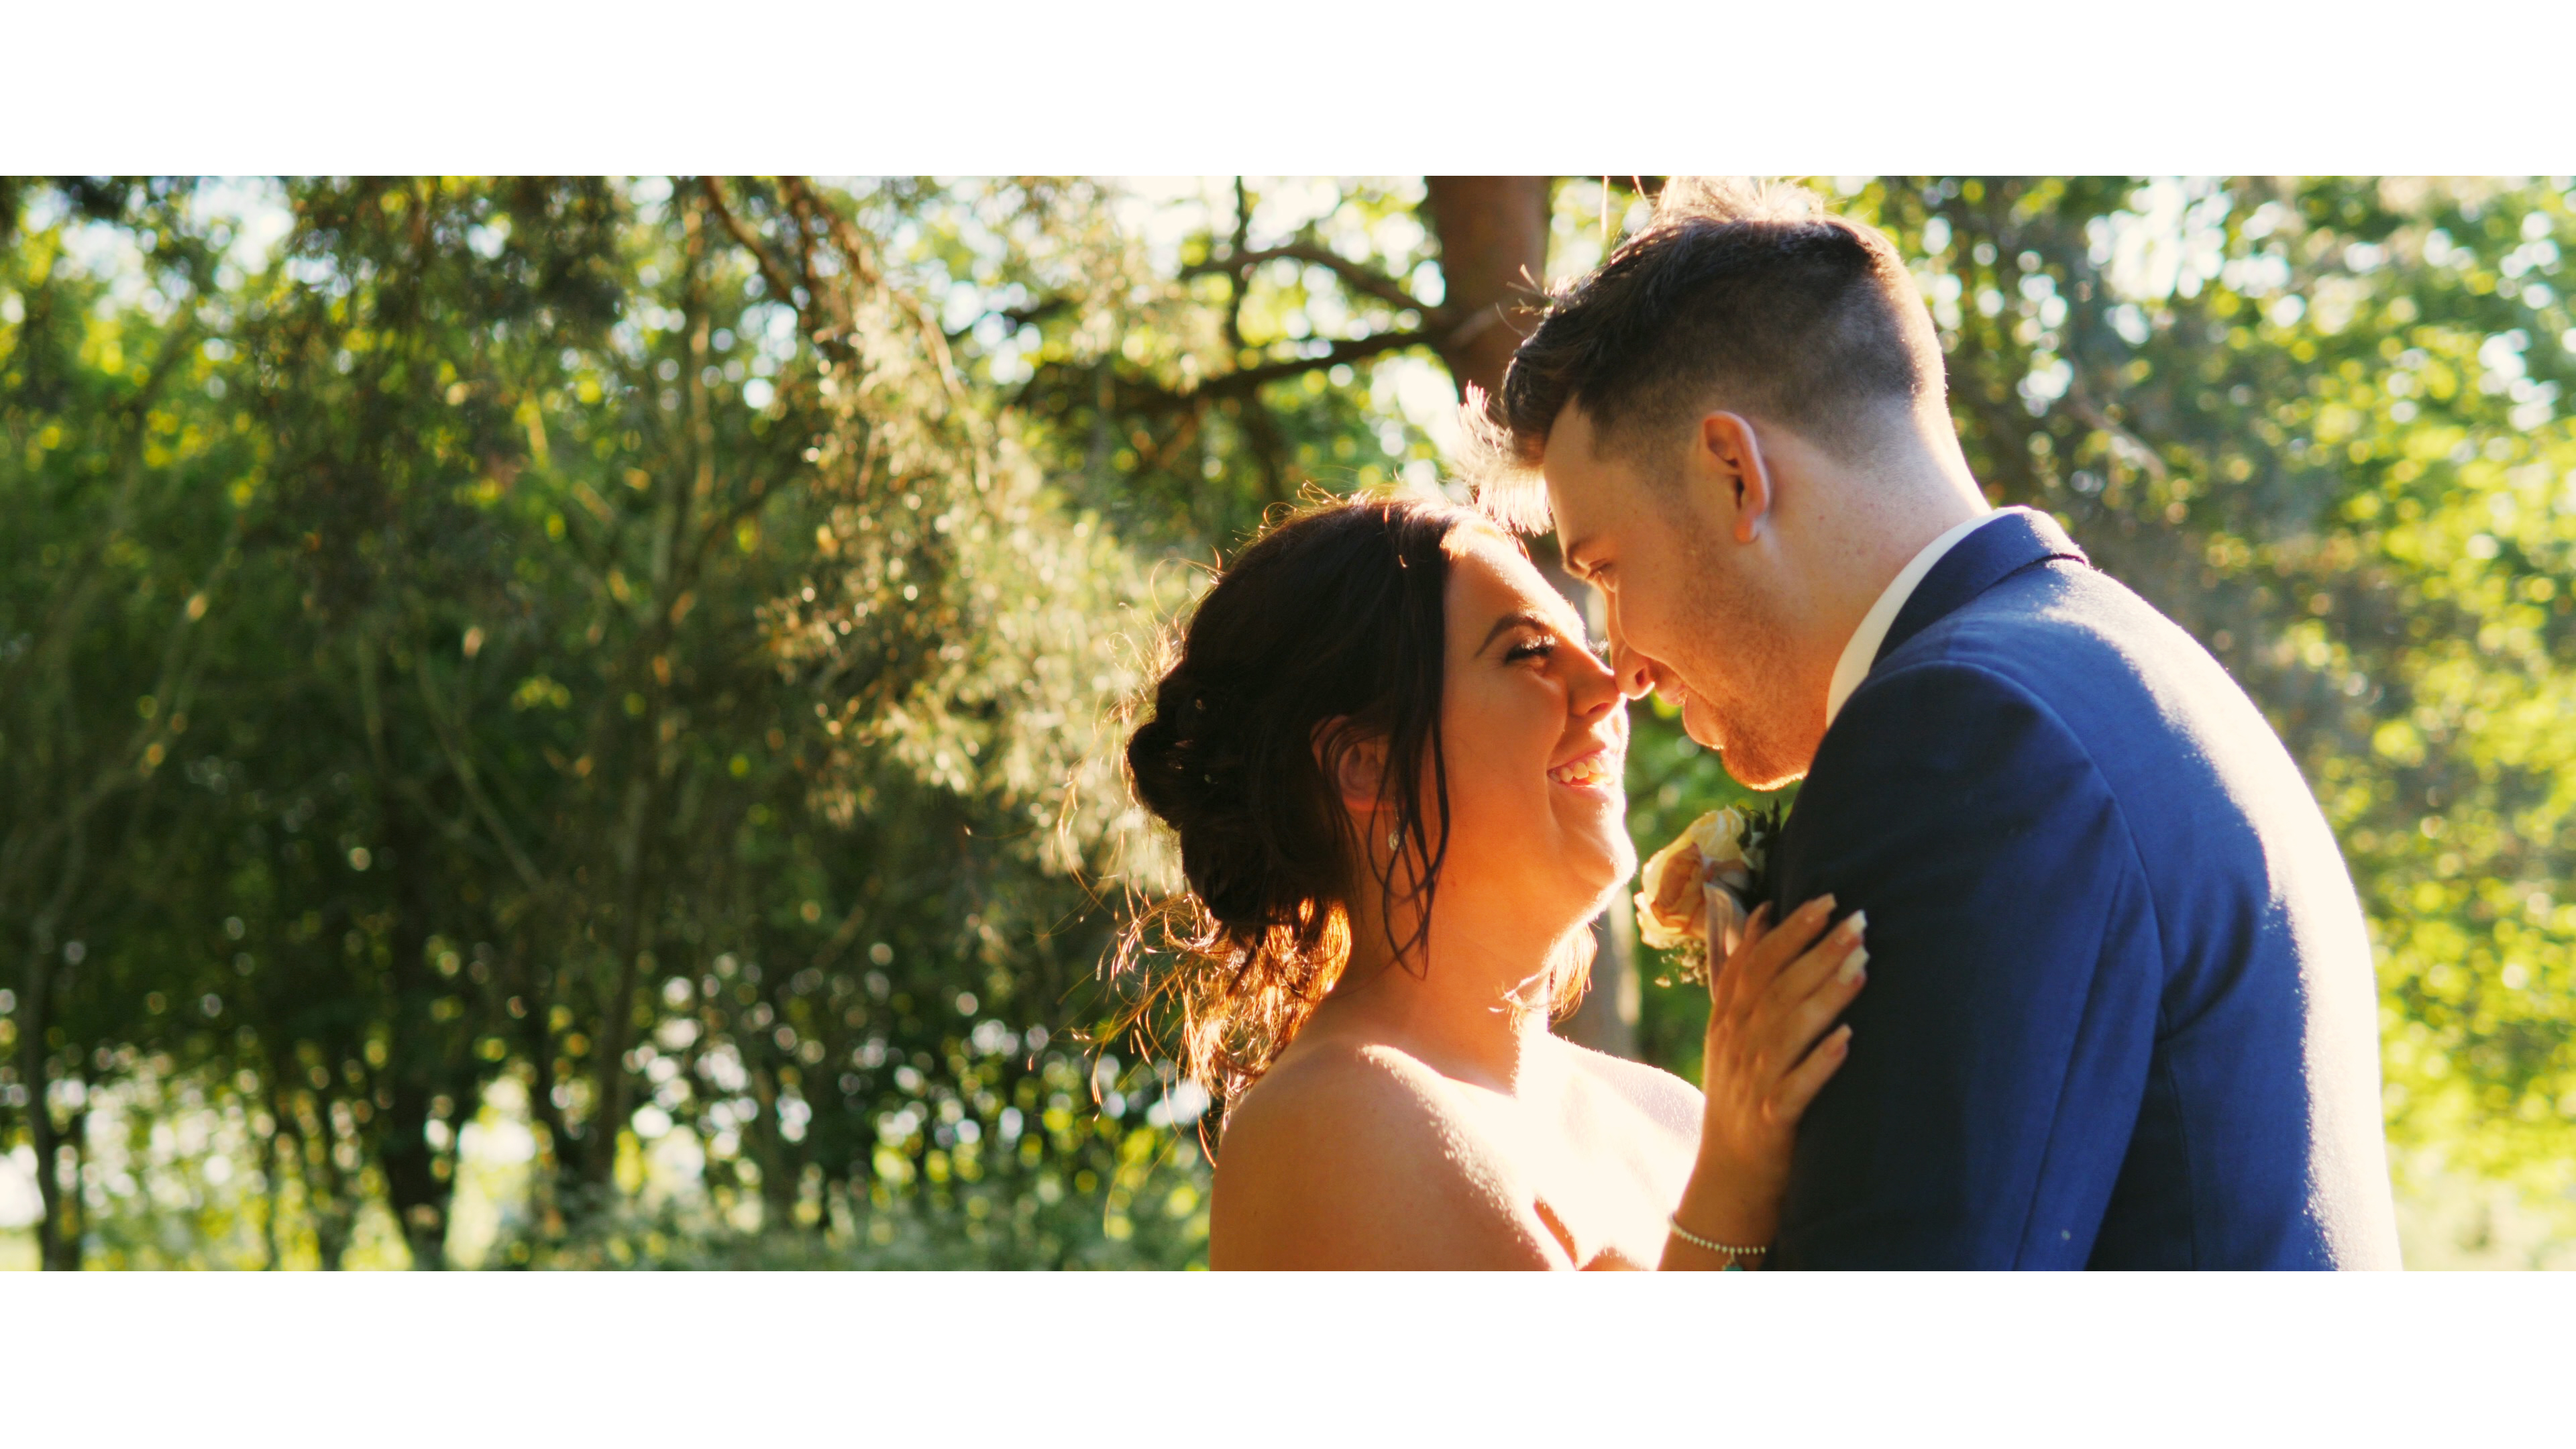 Conor & Chelsea's Wedding Highlights Film at Alrewas Hayes Country House